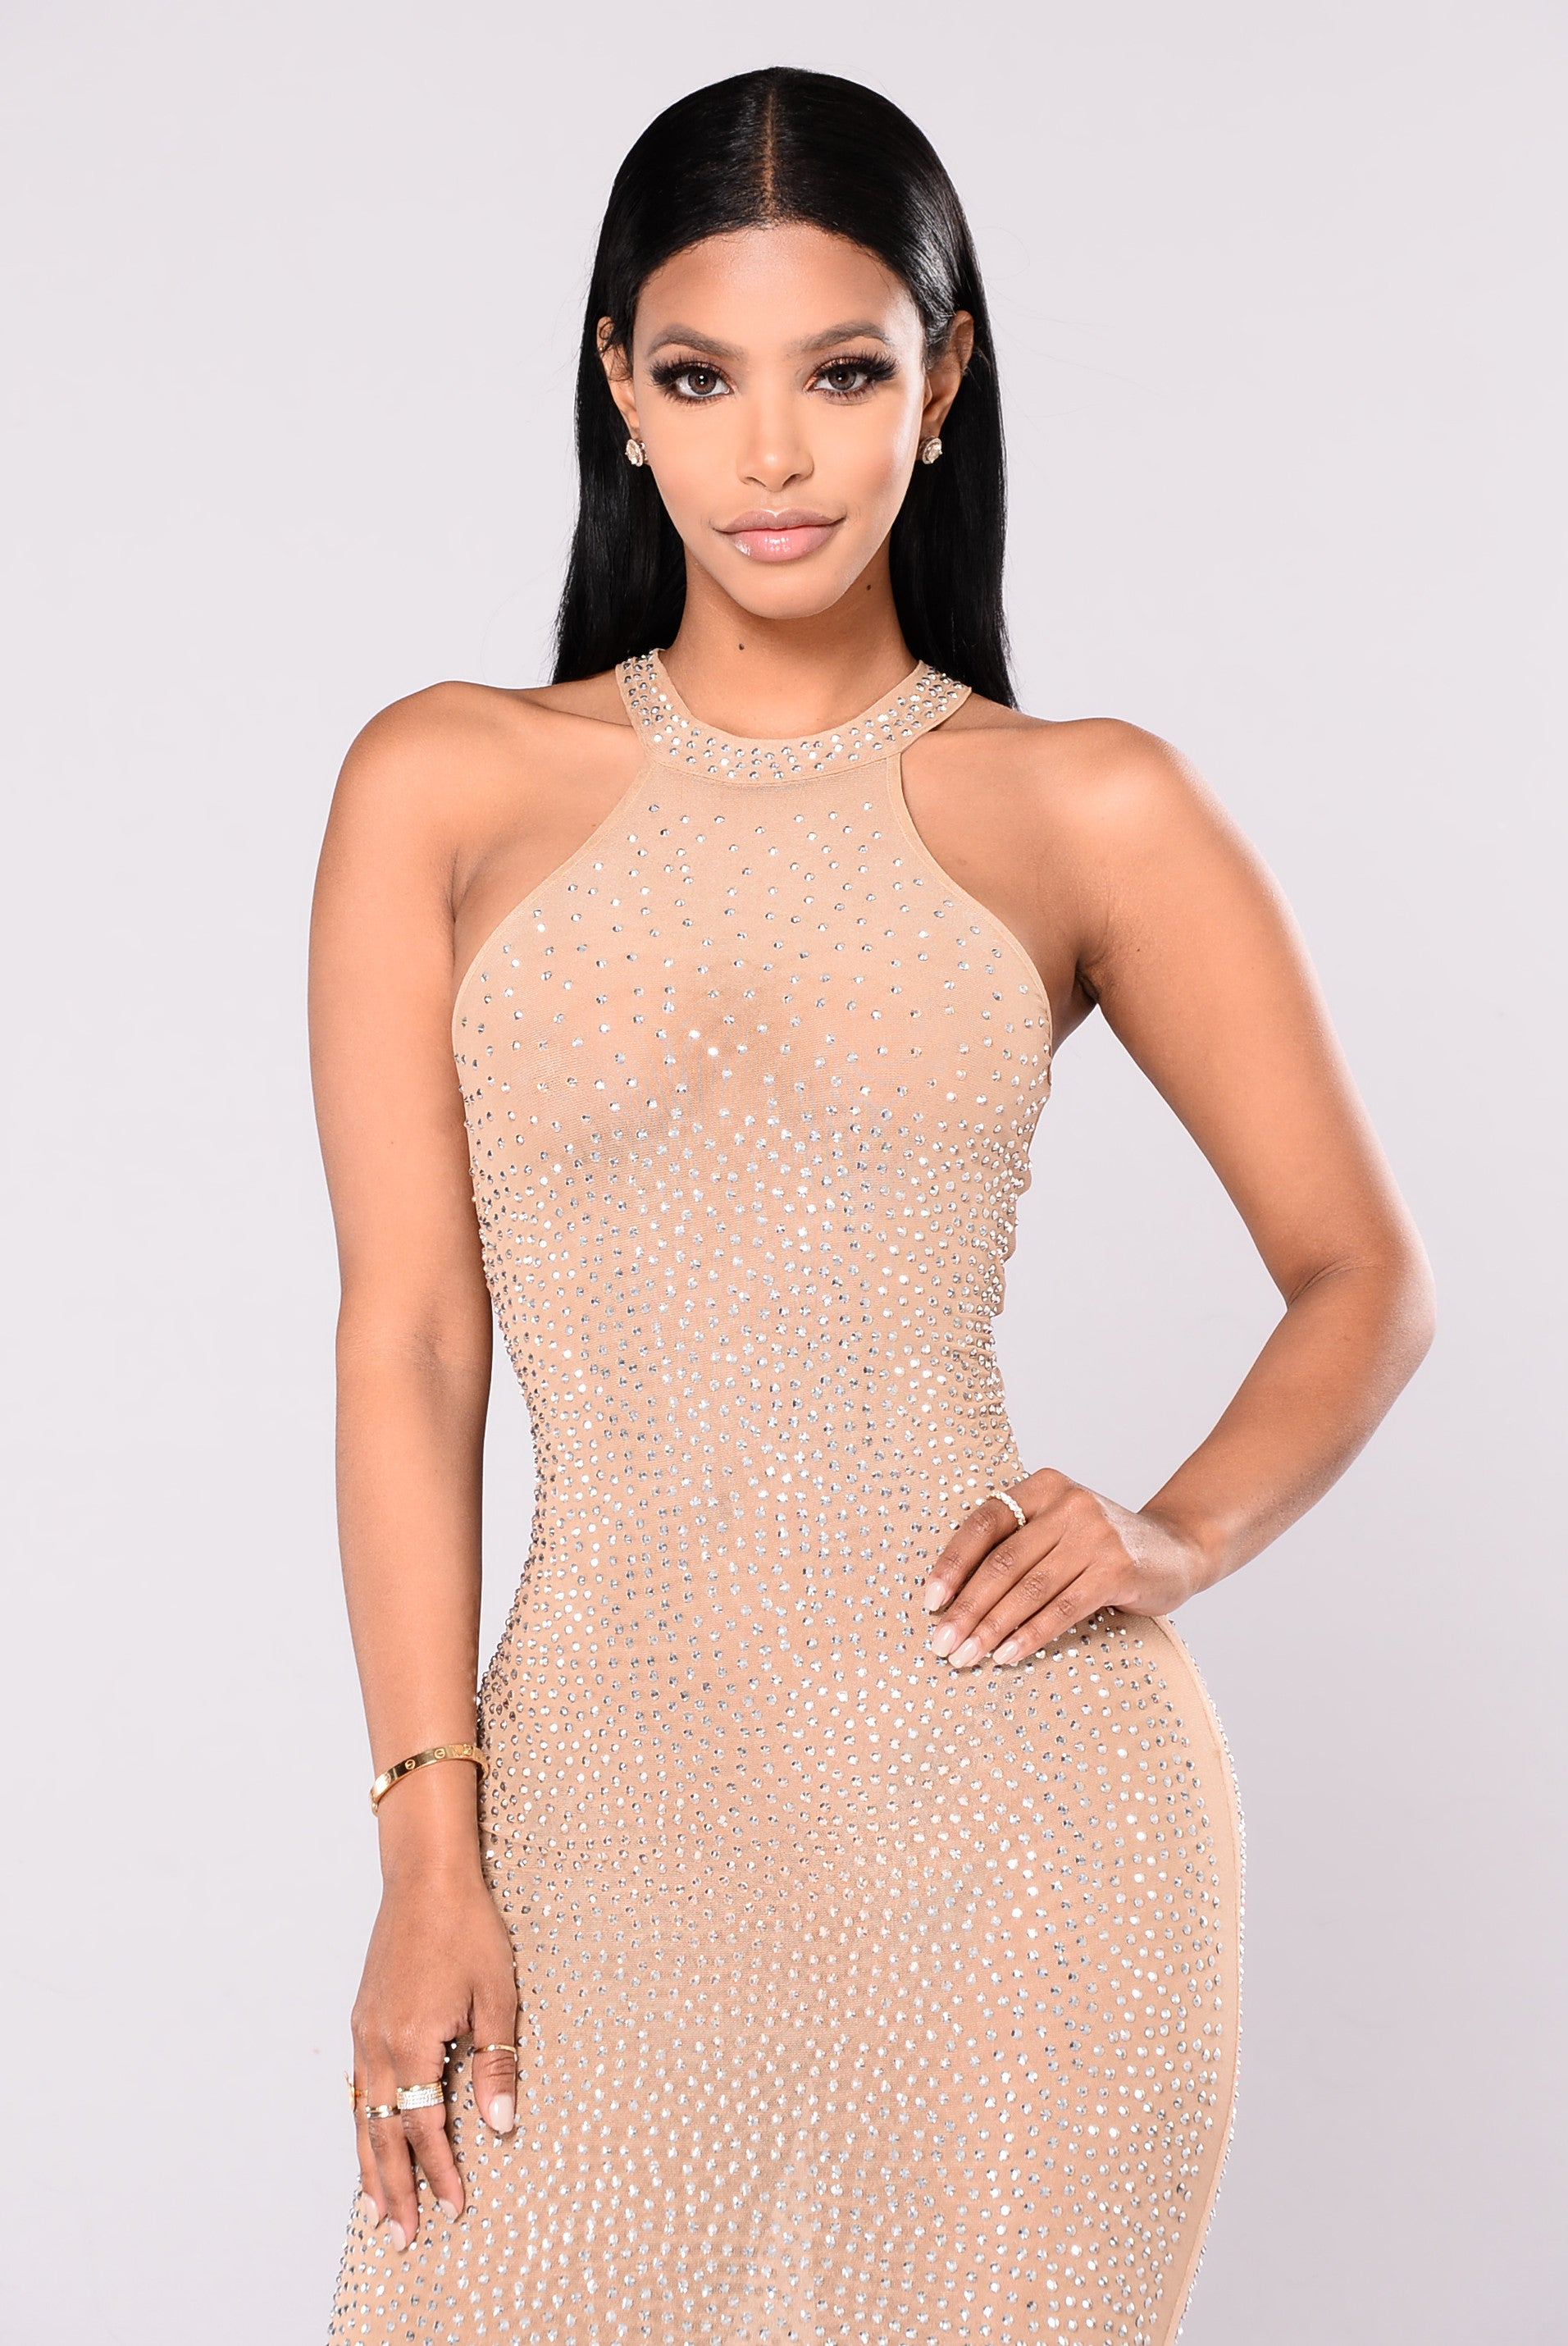 Glo Up Rhinestone Dress - Nude-9873